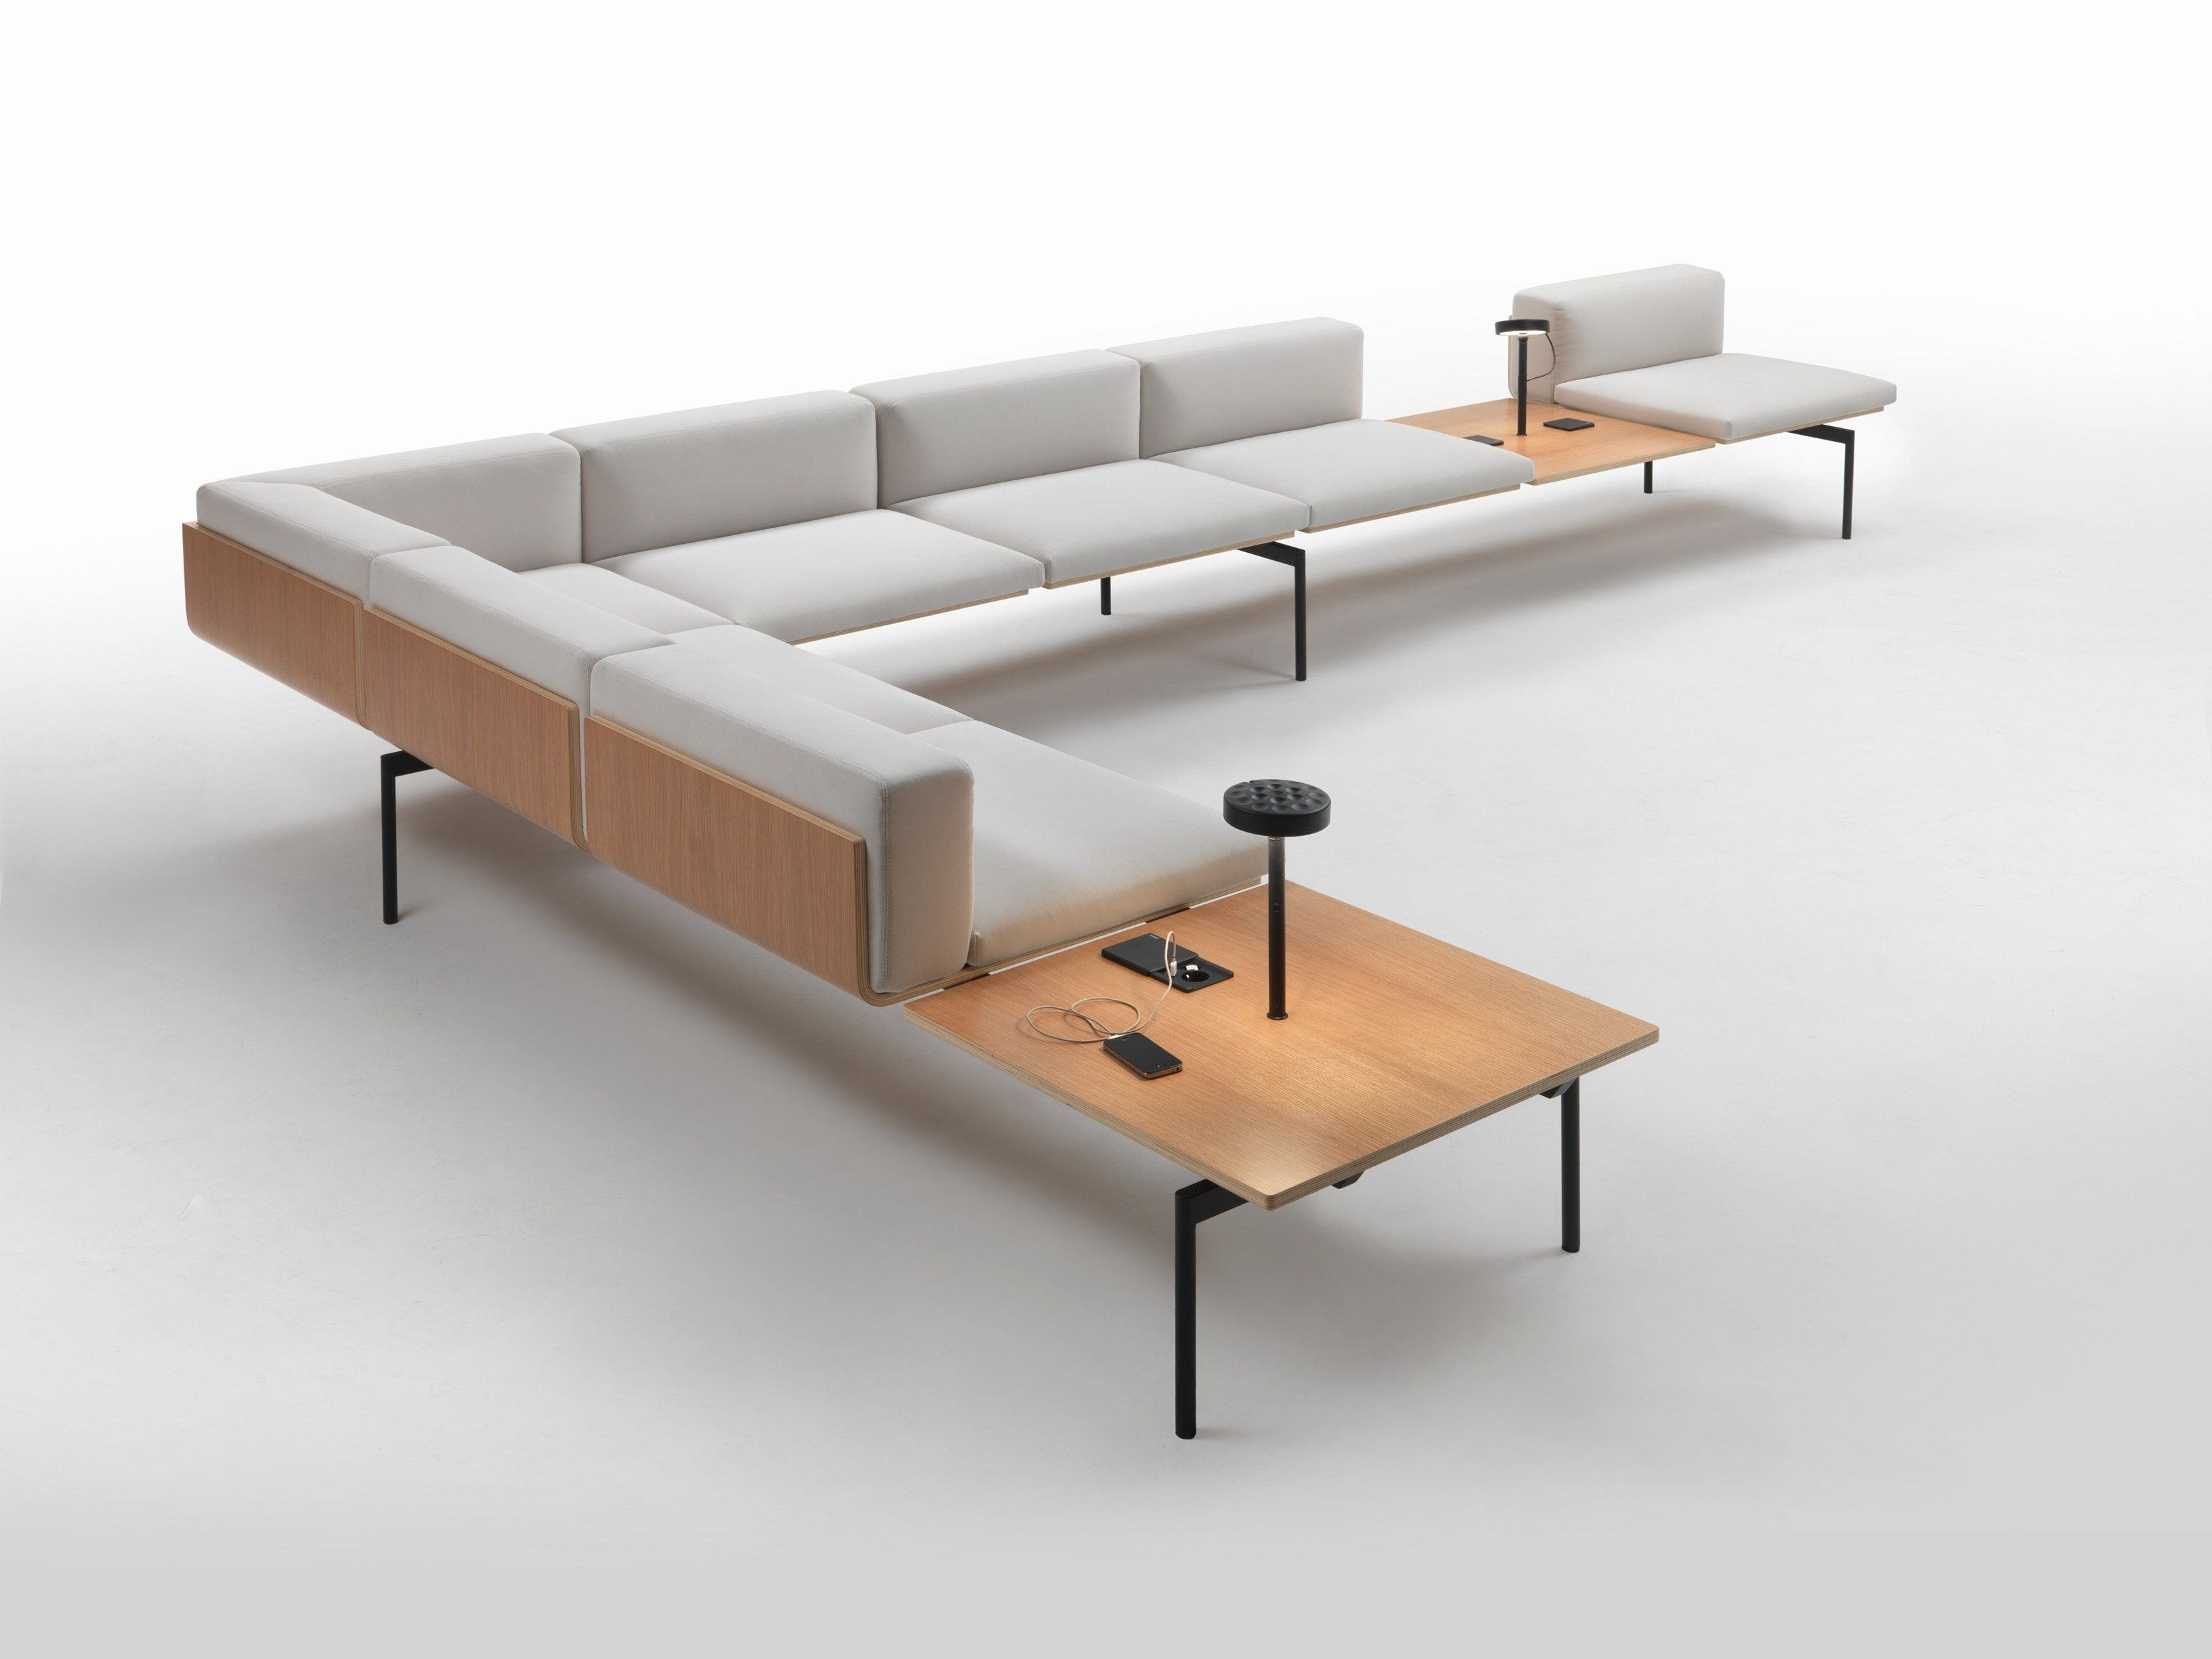 Sectional sofa H SOFA Workshaker Collection by Giulio Marelli